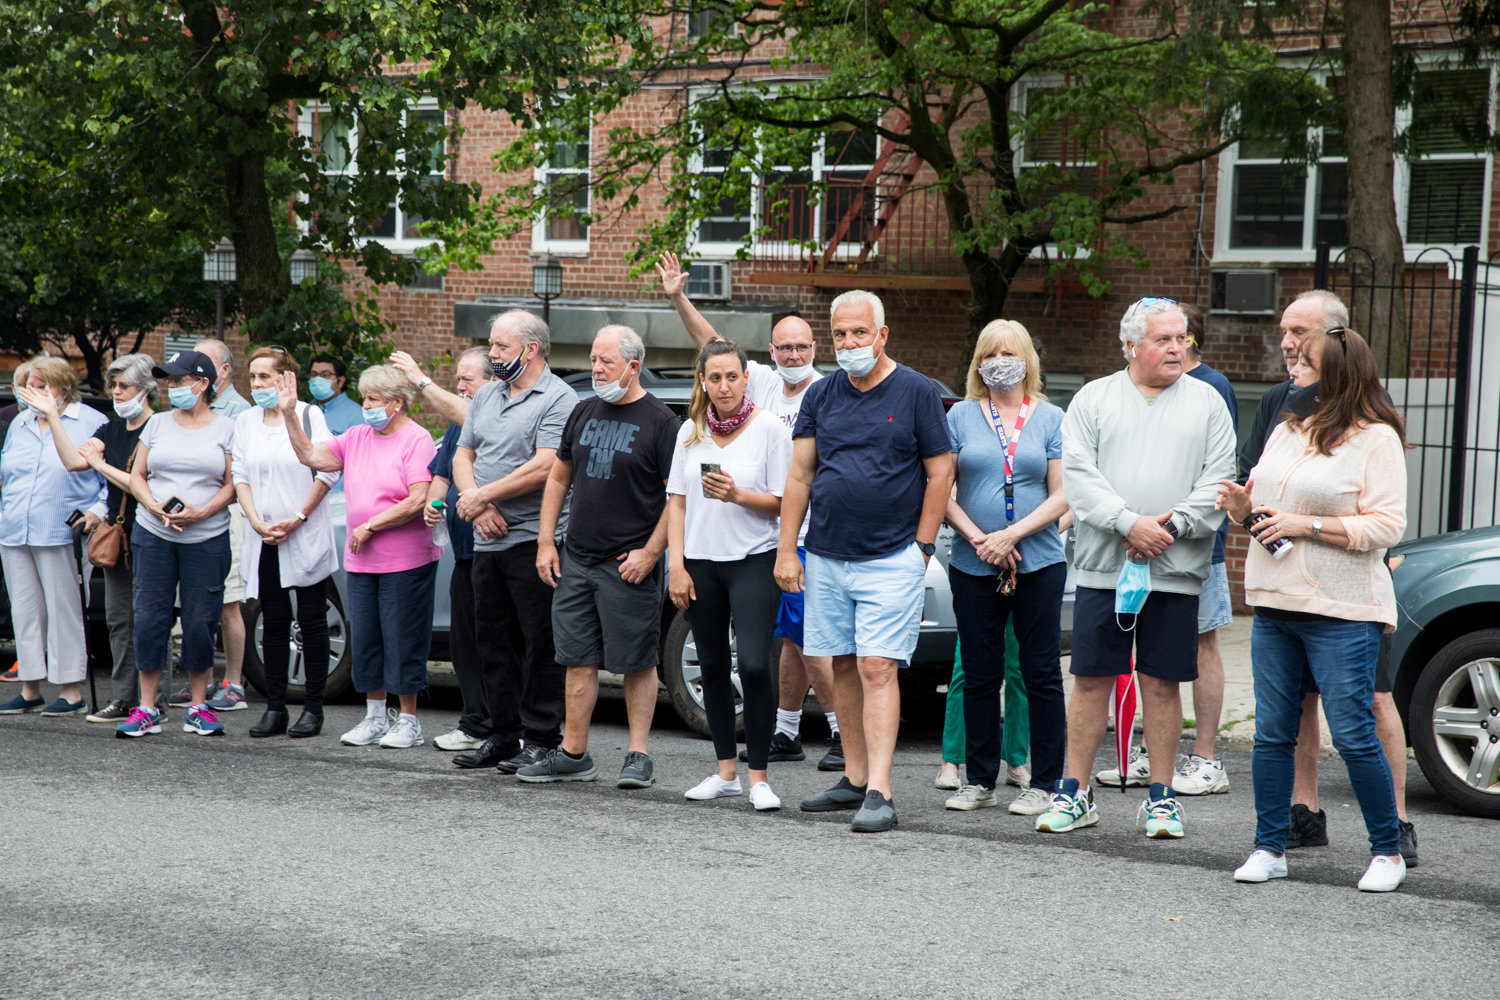 Mourners stand on Mosholu Avenue during a funeral procession for the late Michael Rooney, a lifelong Riverdale resident.